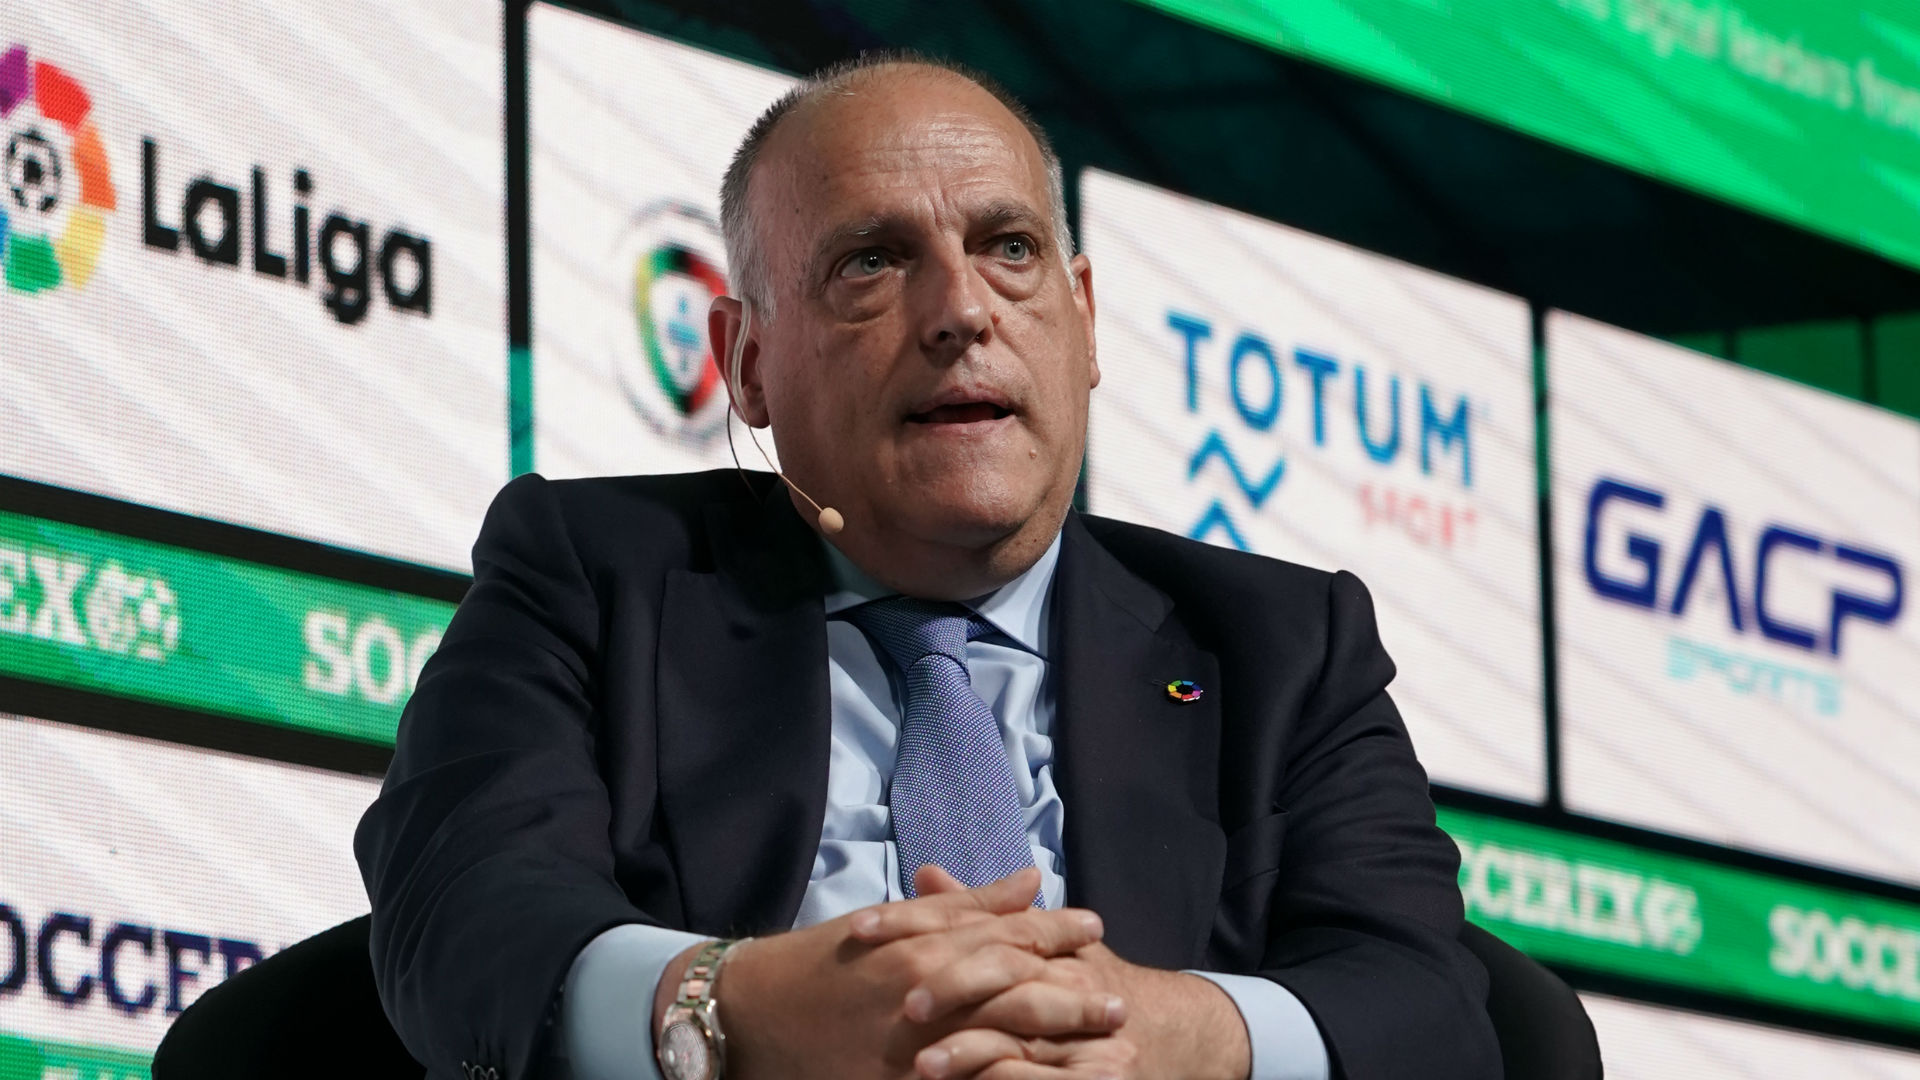 'There will be football every day' - Tebas set on June 12 date for La Liga resumption